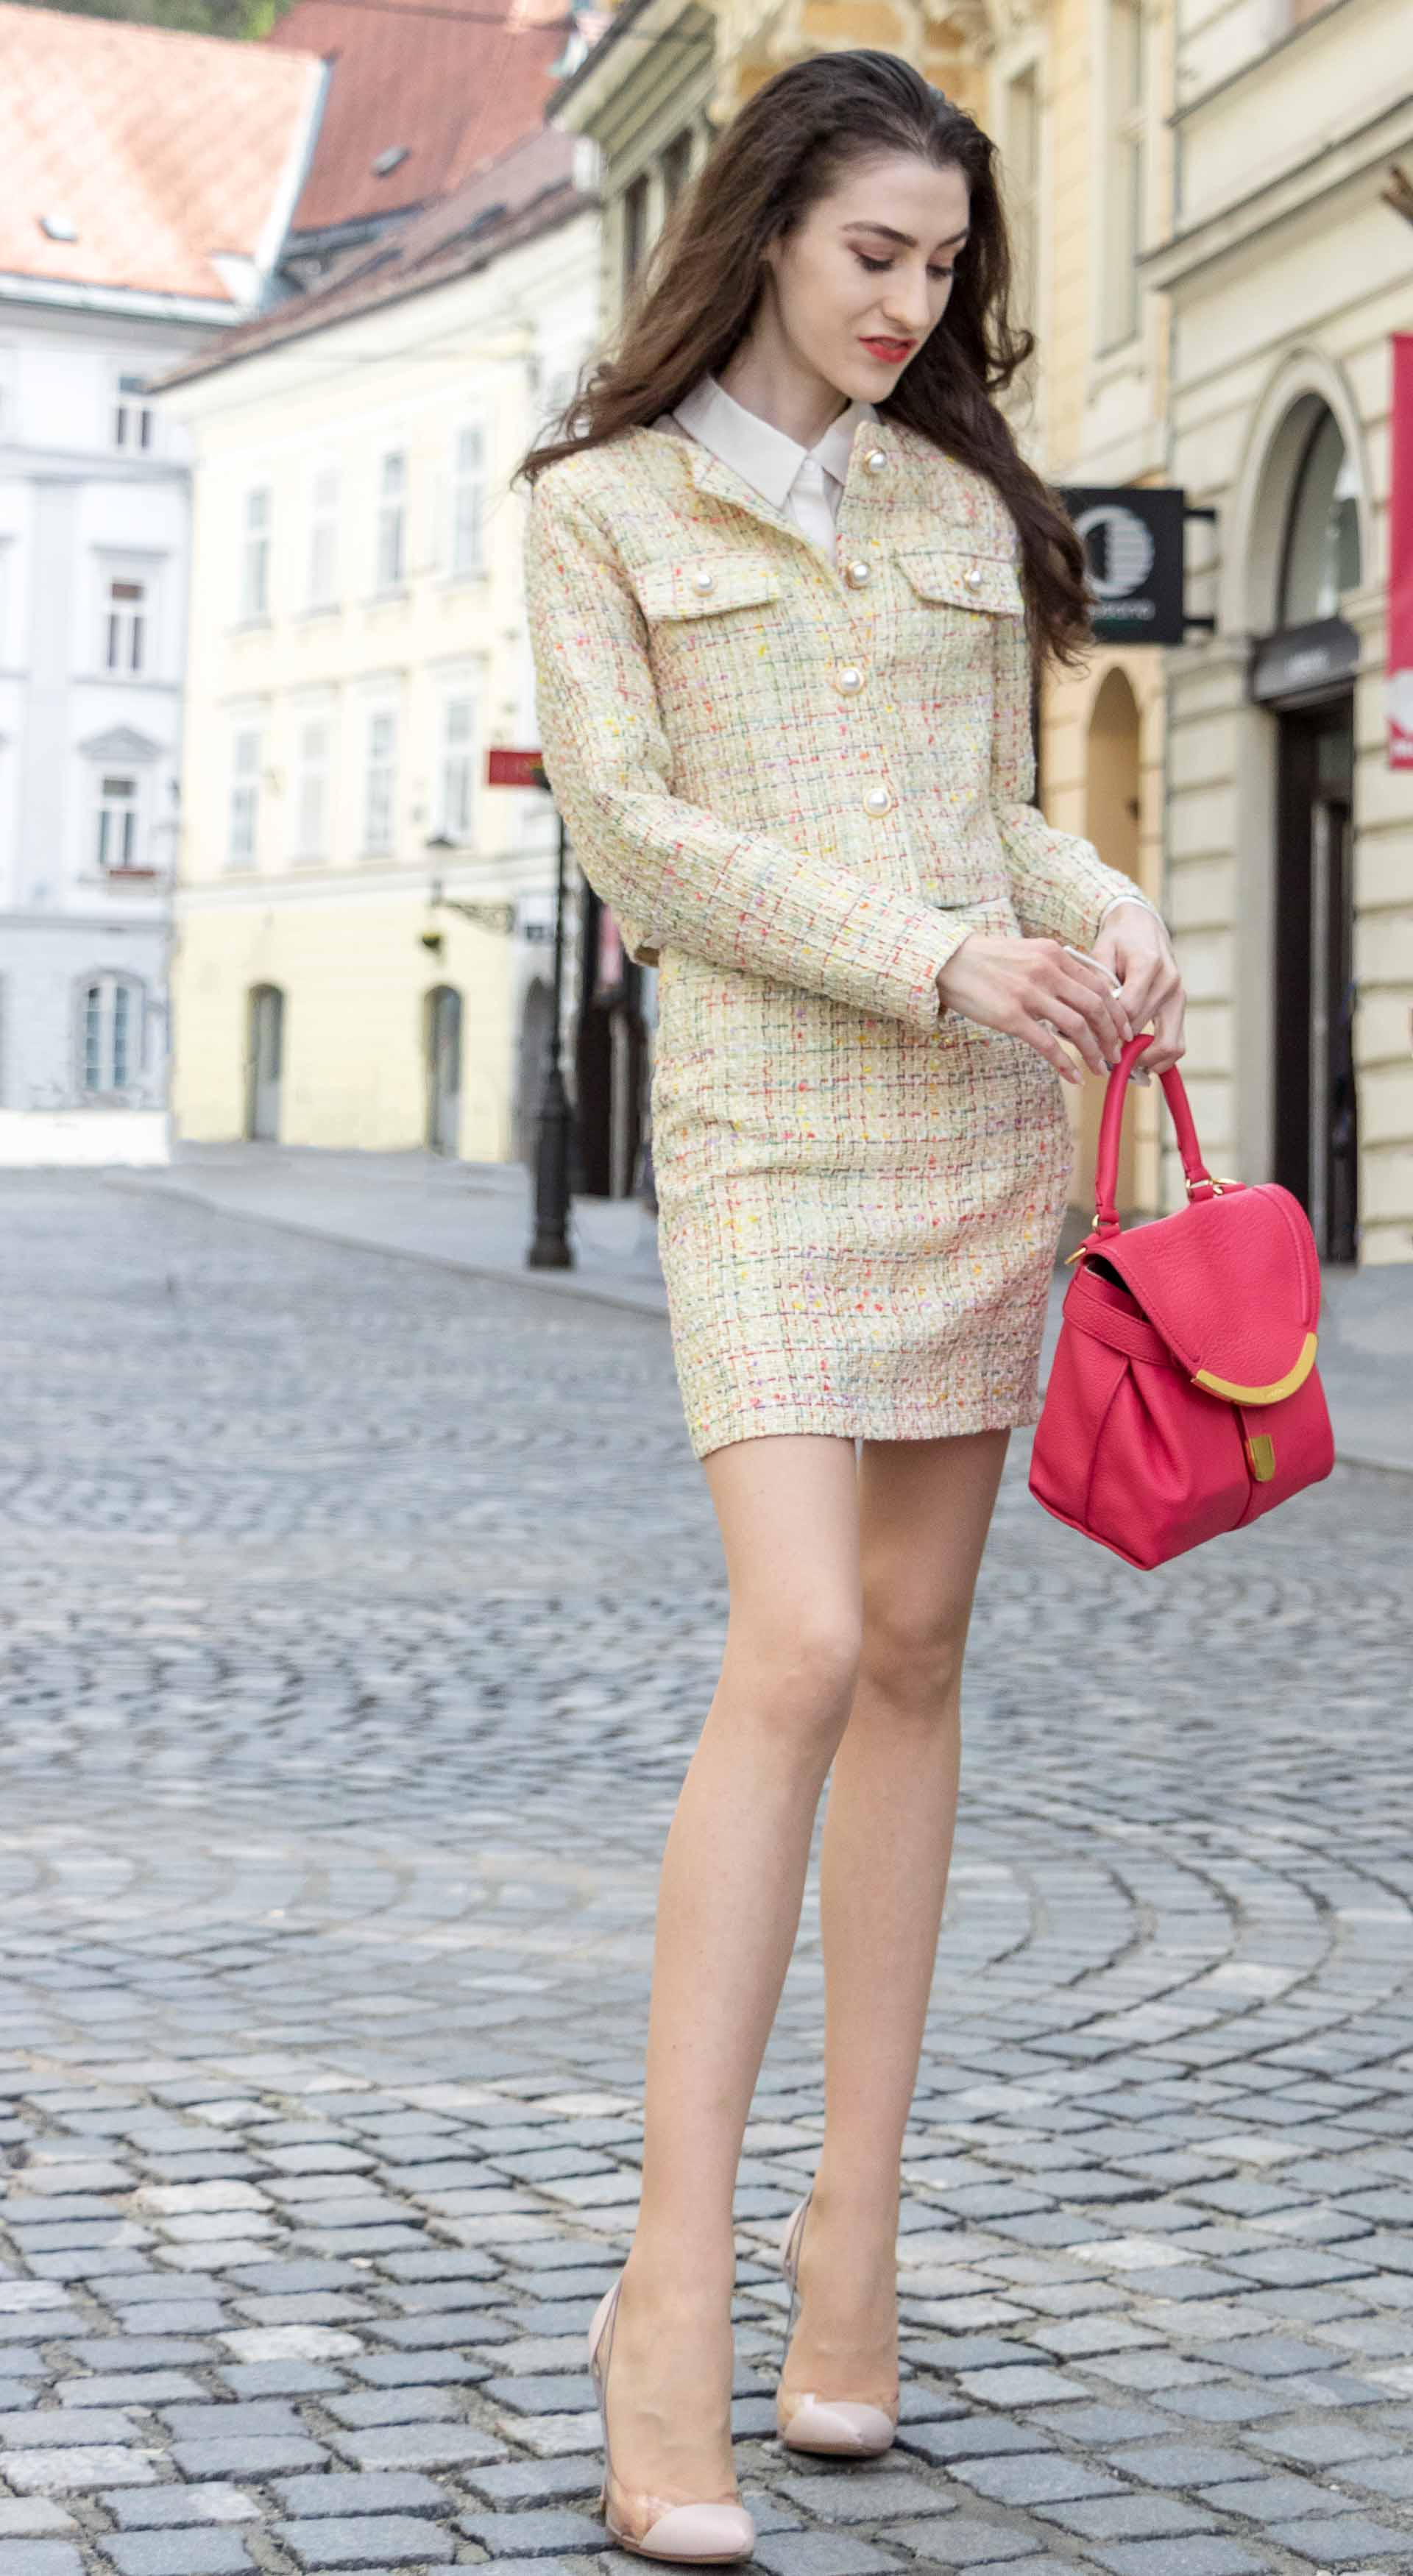 Fashion Blogger Veronika Lipar of Brunette from Wall Street dressed in Storets yellow tweed mini skirt suit, Gianvito Rossi plexi pumps, See by Chloe pink top handle bag for spring brunch